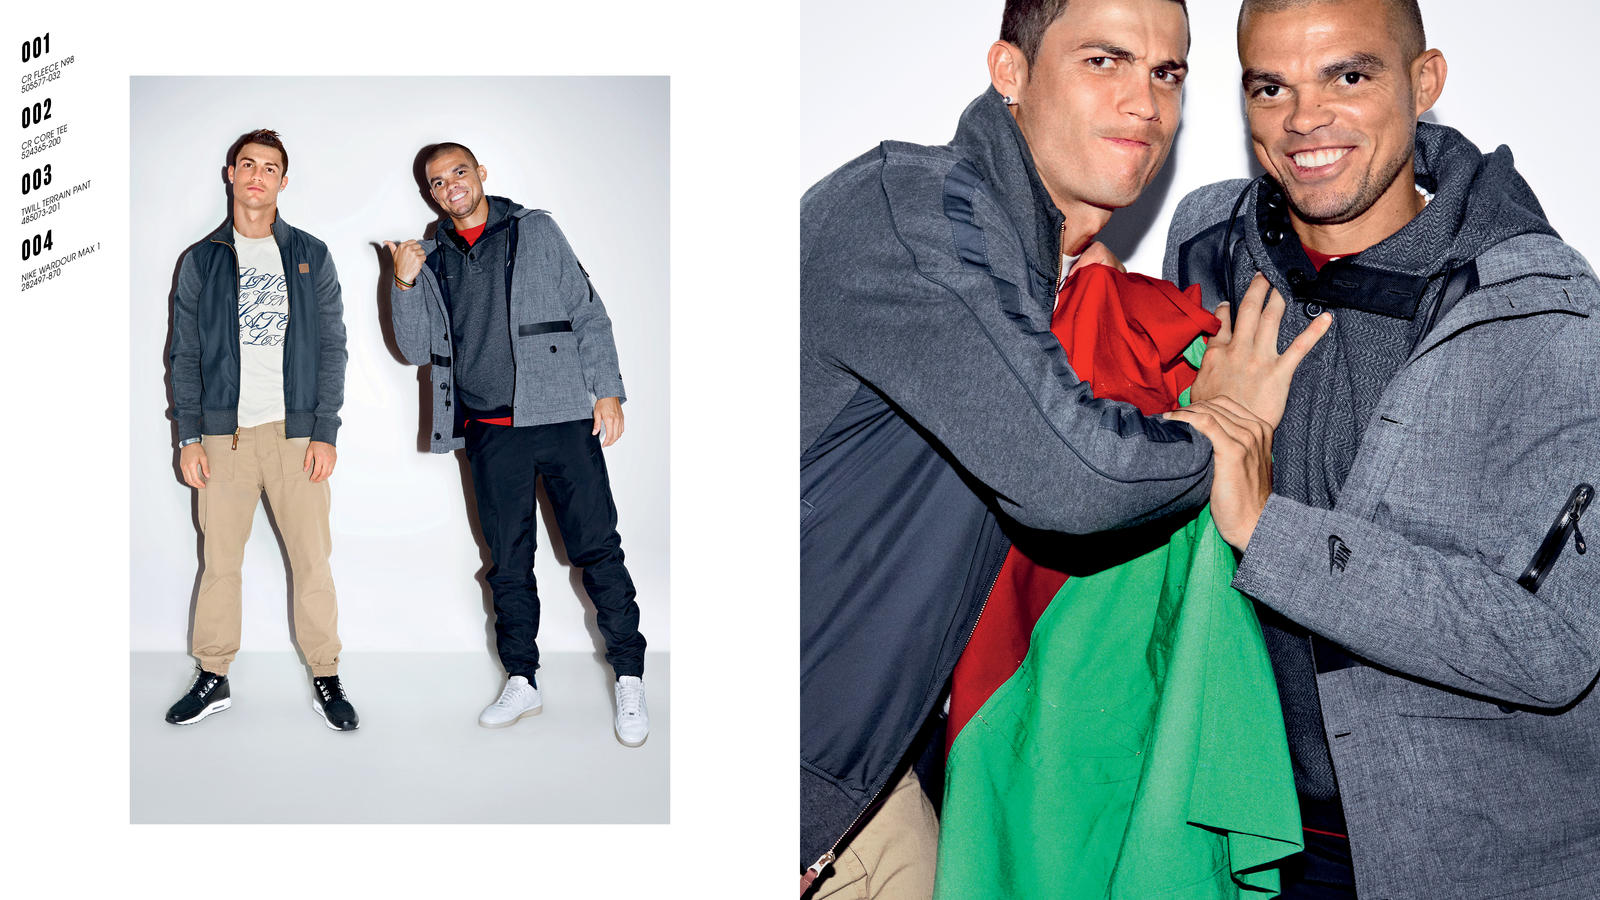 Nike_Soccer_CR7_Lookbook_27